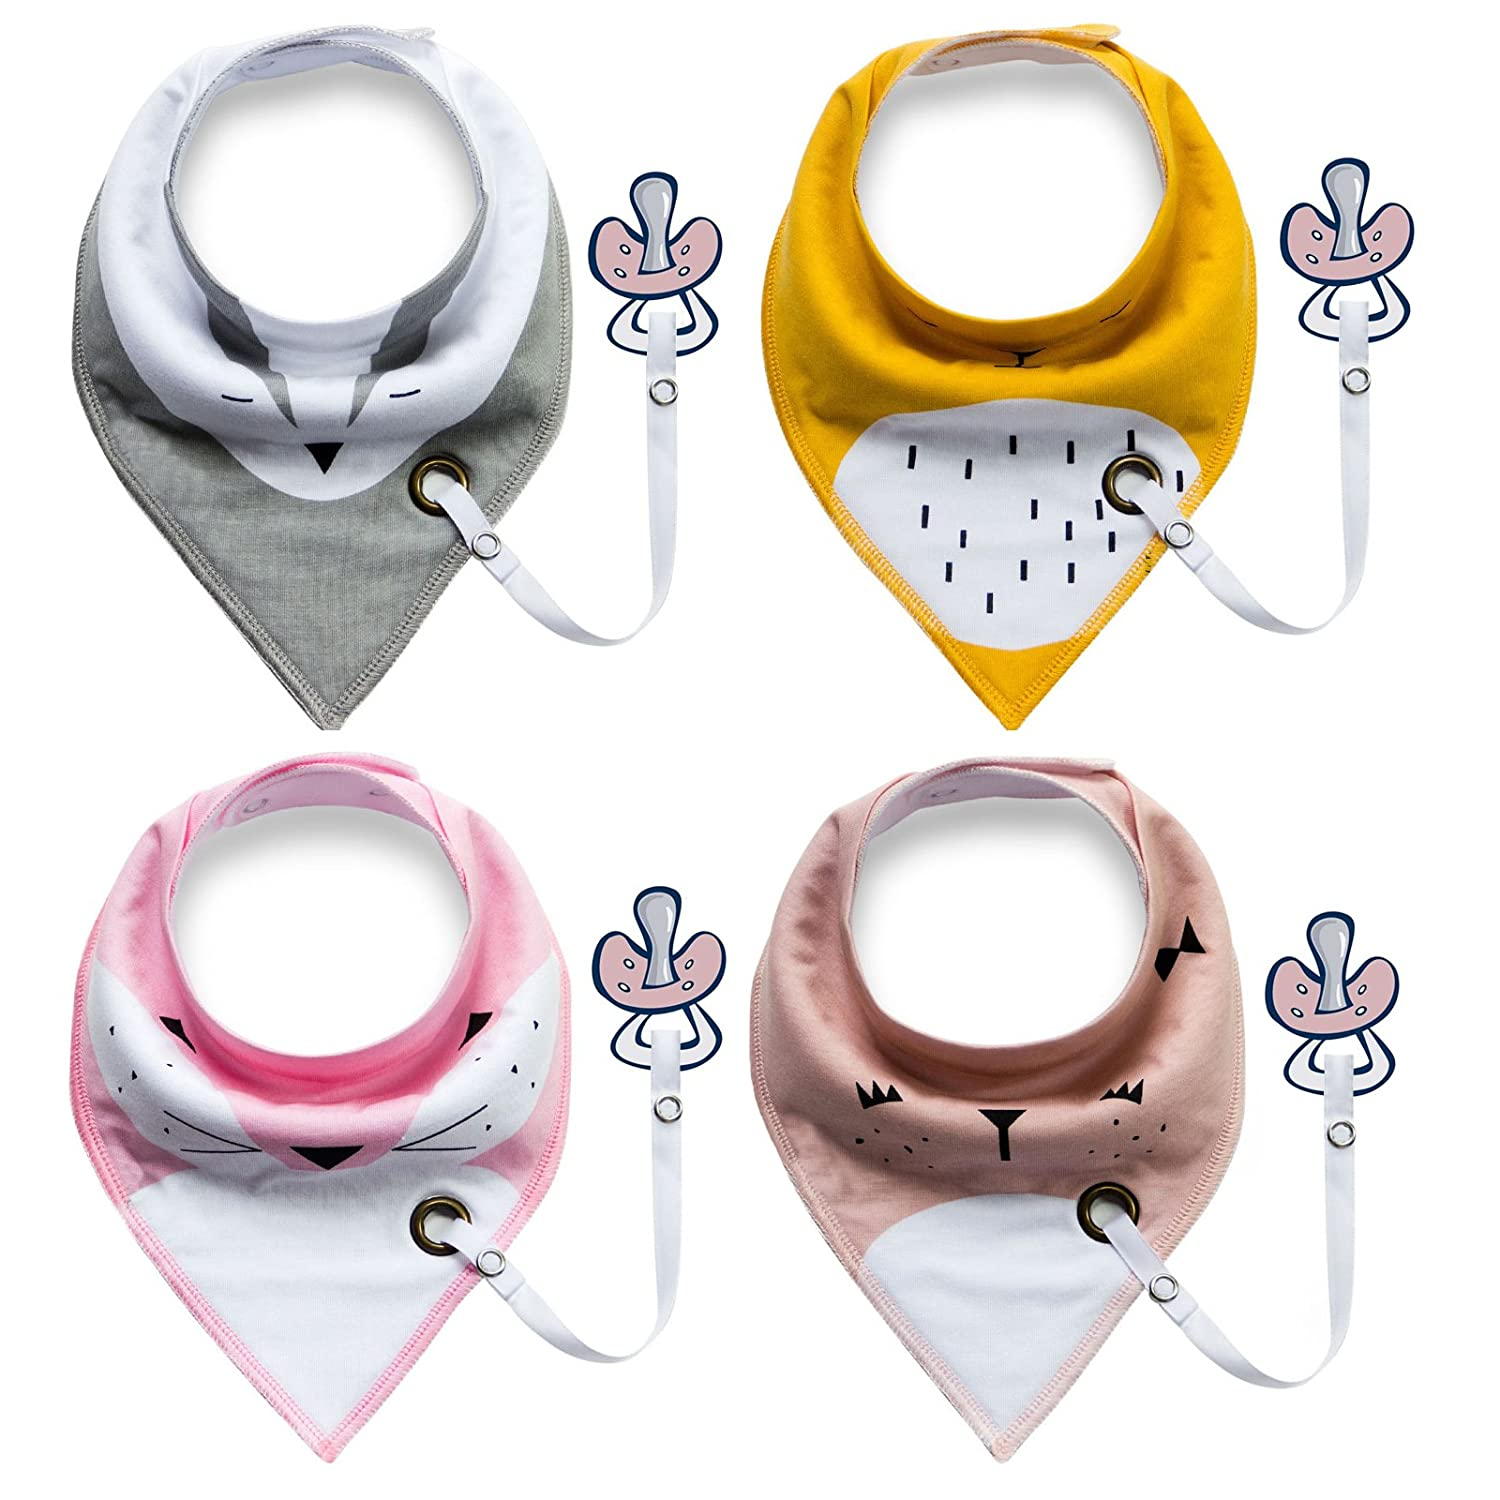 4-Pack Unisex Baby Toddlers Bandana Drool Bibs with Snaps Soft Organic Cotton Unique Shower Gift Set Super Absorbent for Teething Feeding Fashion Adjustable with Pacifier Clip MY007H